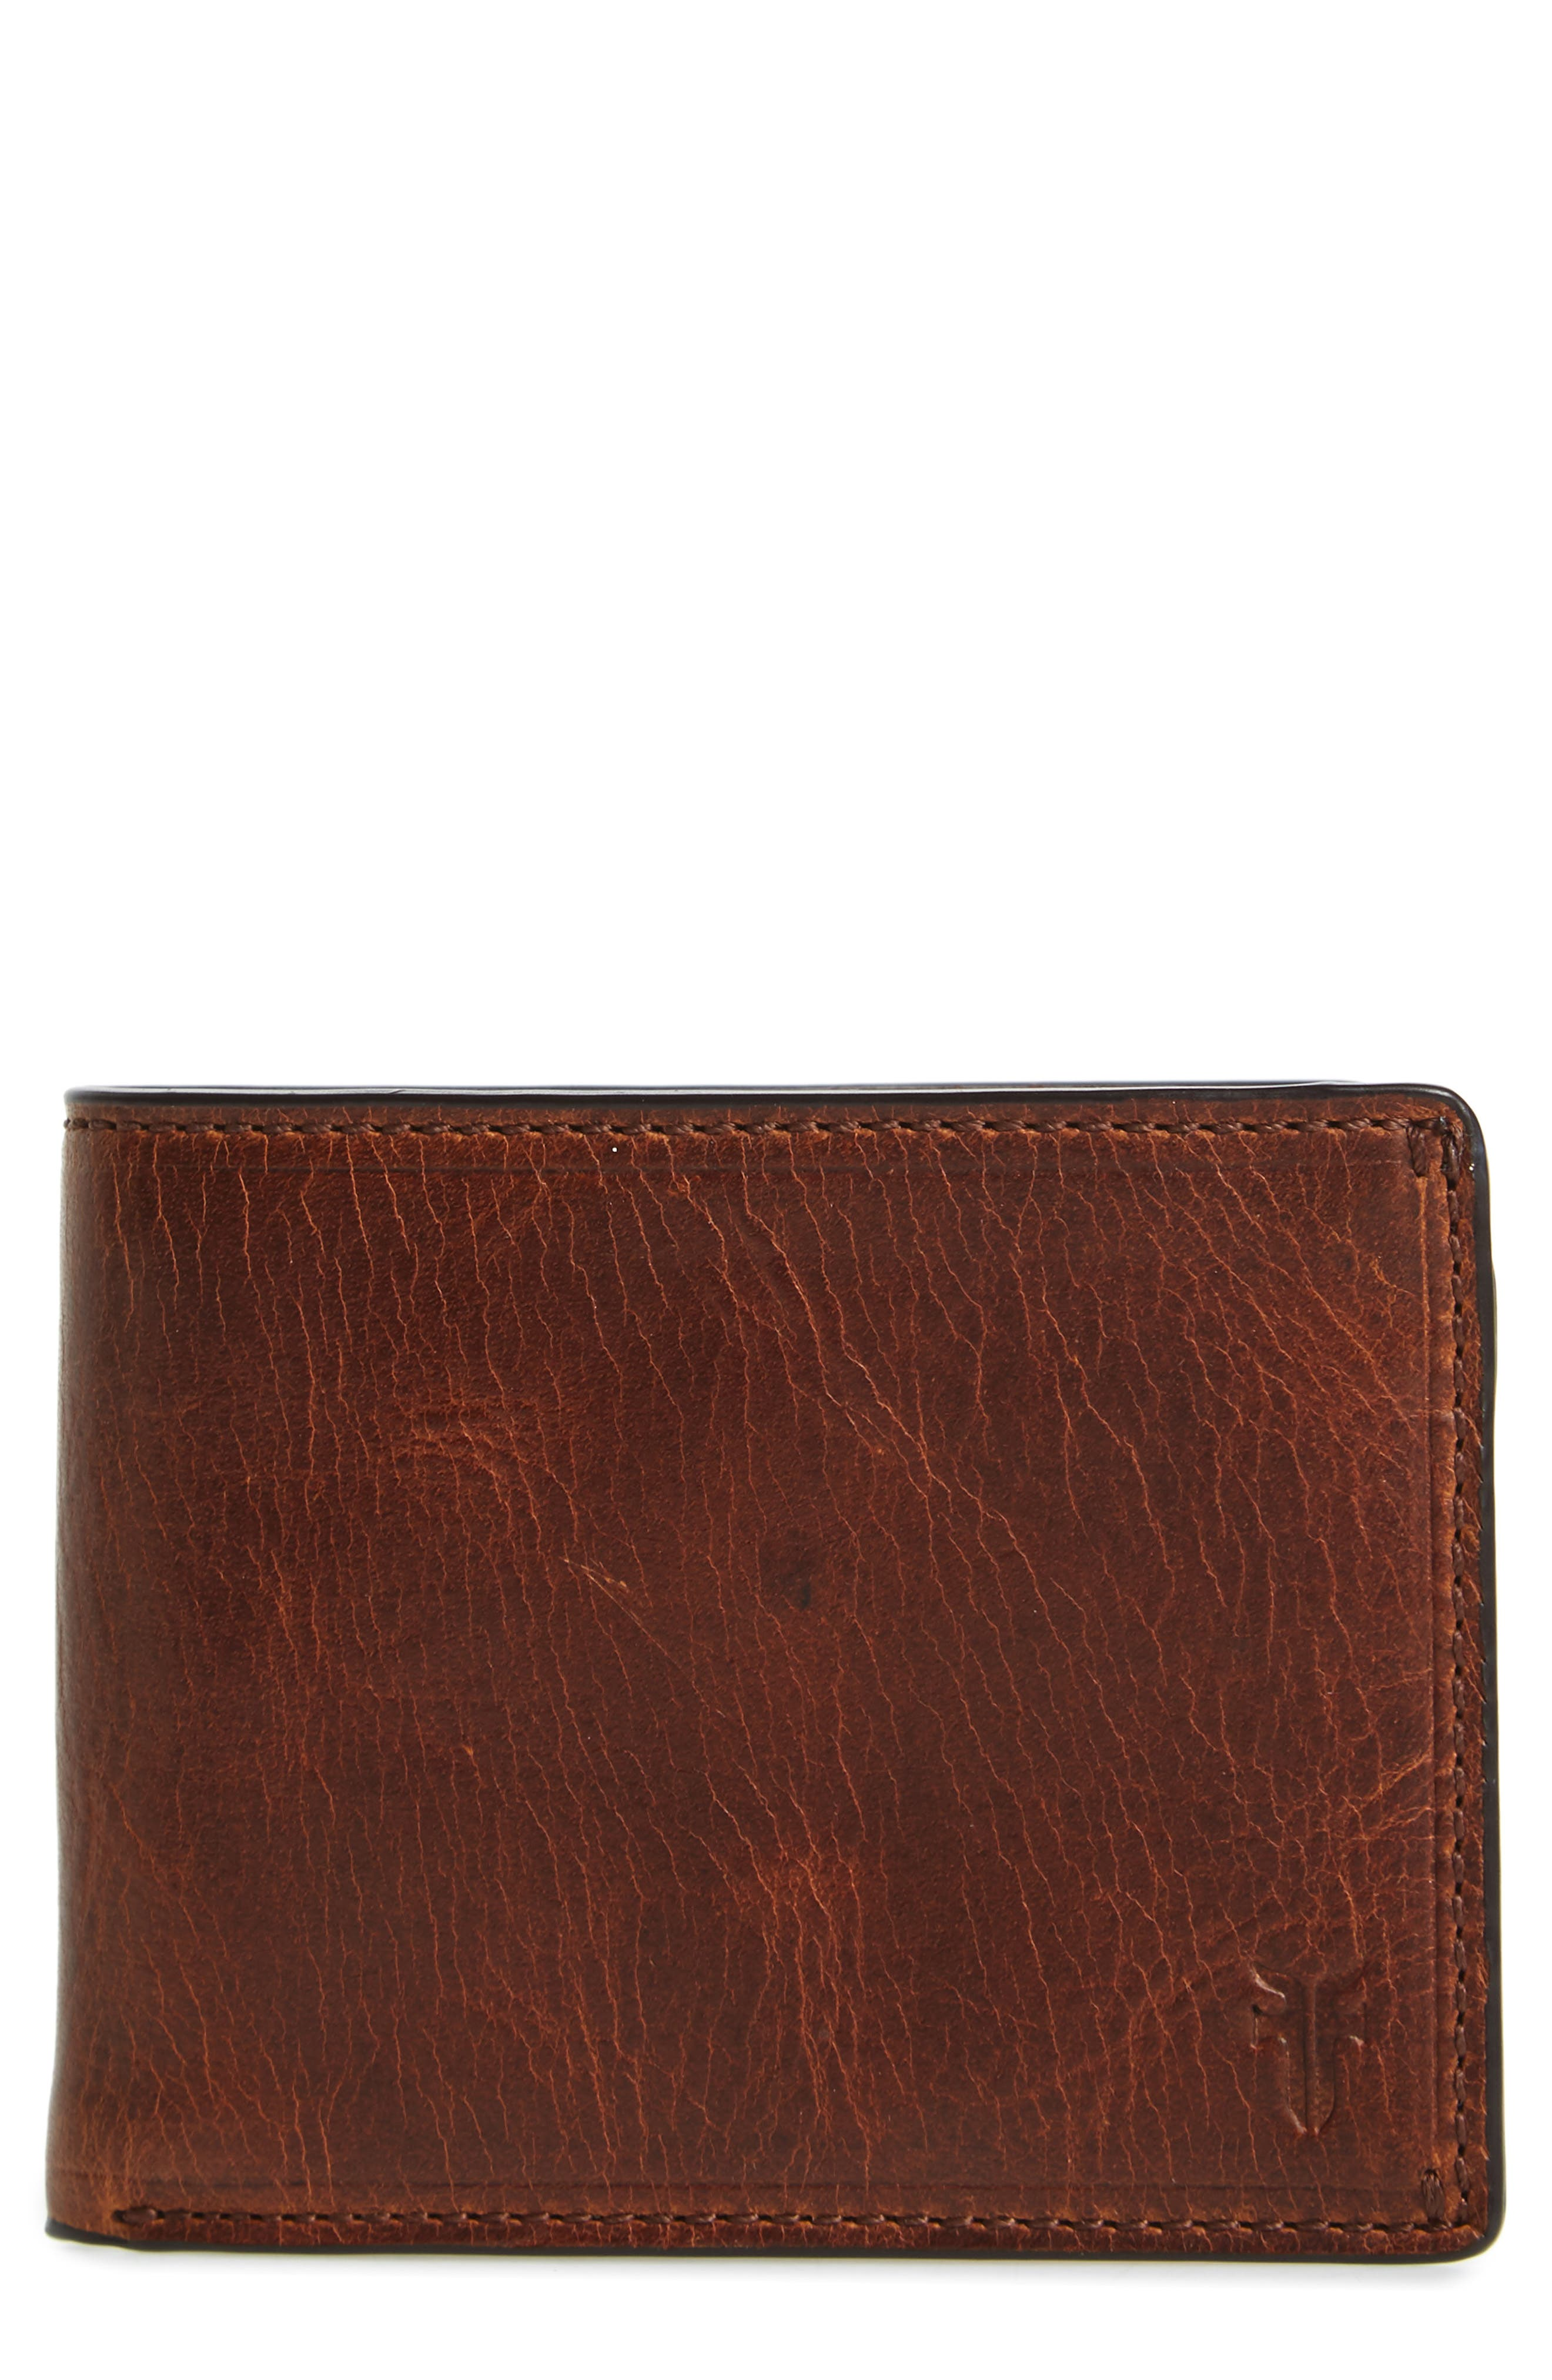 FRYE, Logan Leather Wallet, Main thumbnail 1, color, COGNAC